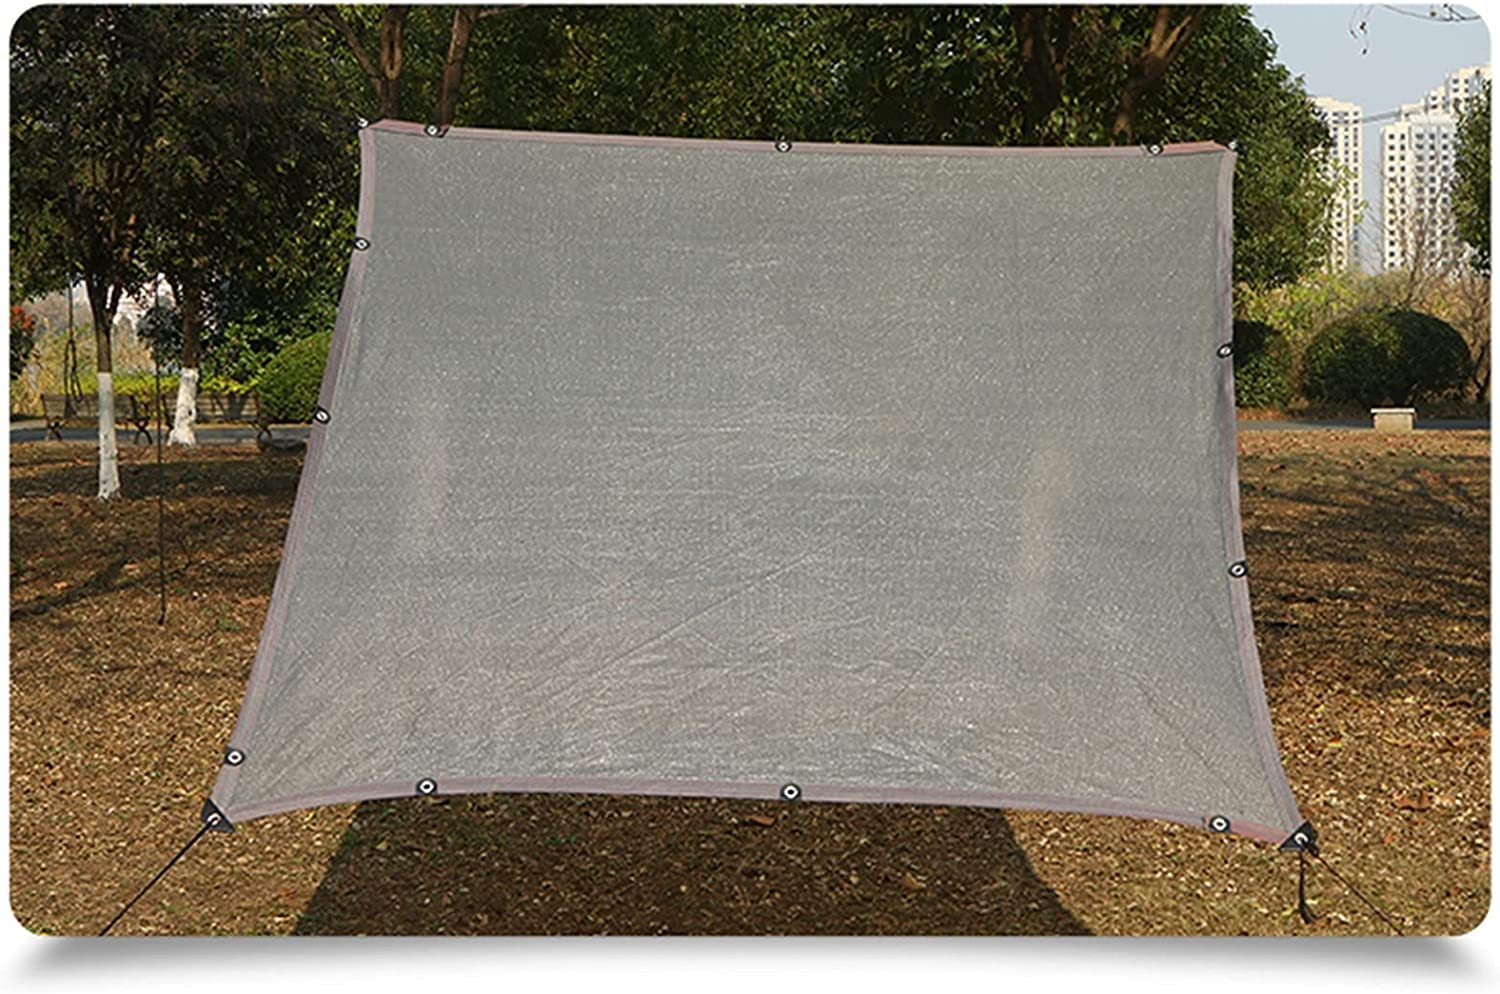 CHHD Our shop most popular Shade Cloth HDPE Sun Su Grommets Anti-Aging with sold out Sail